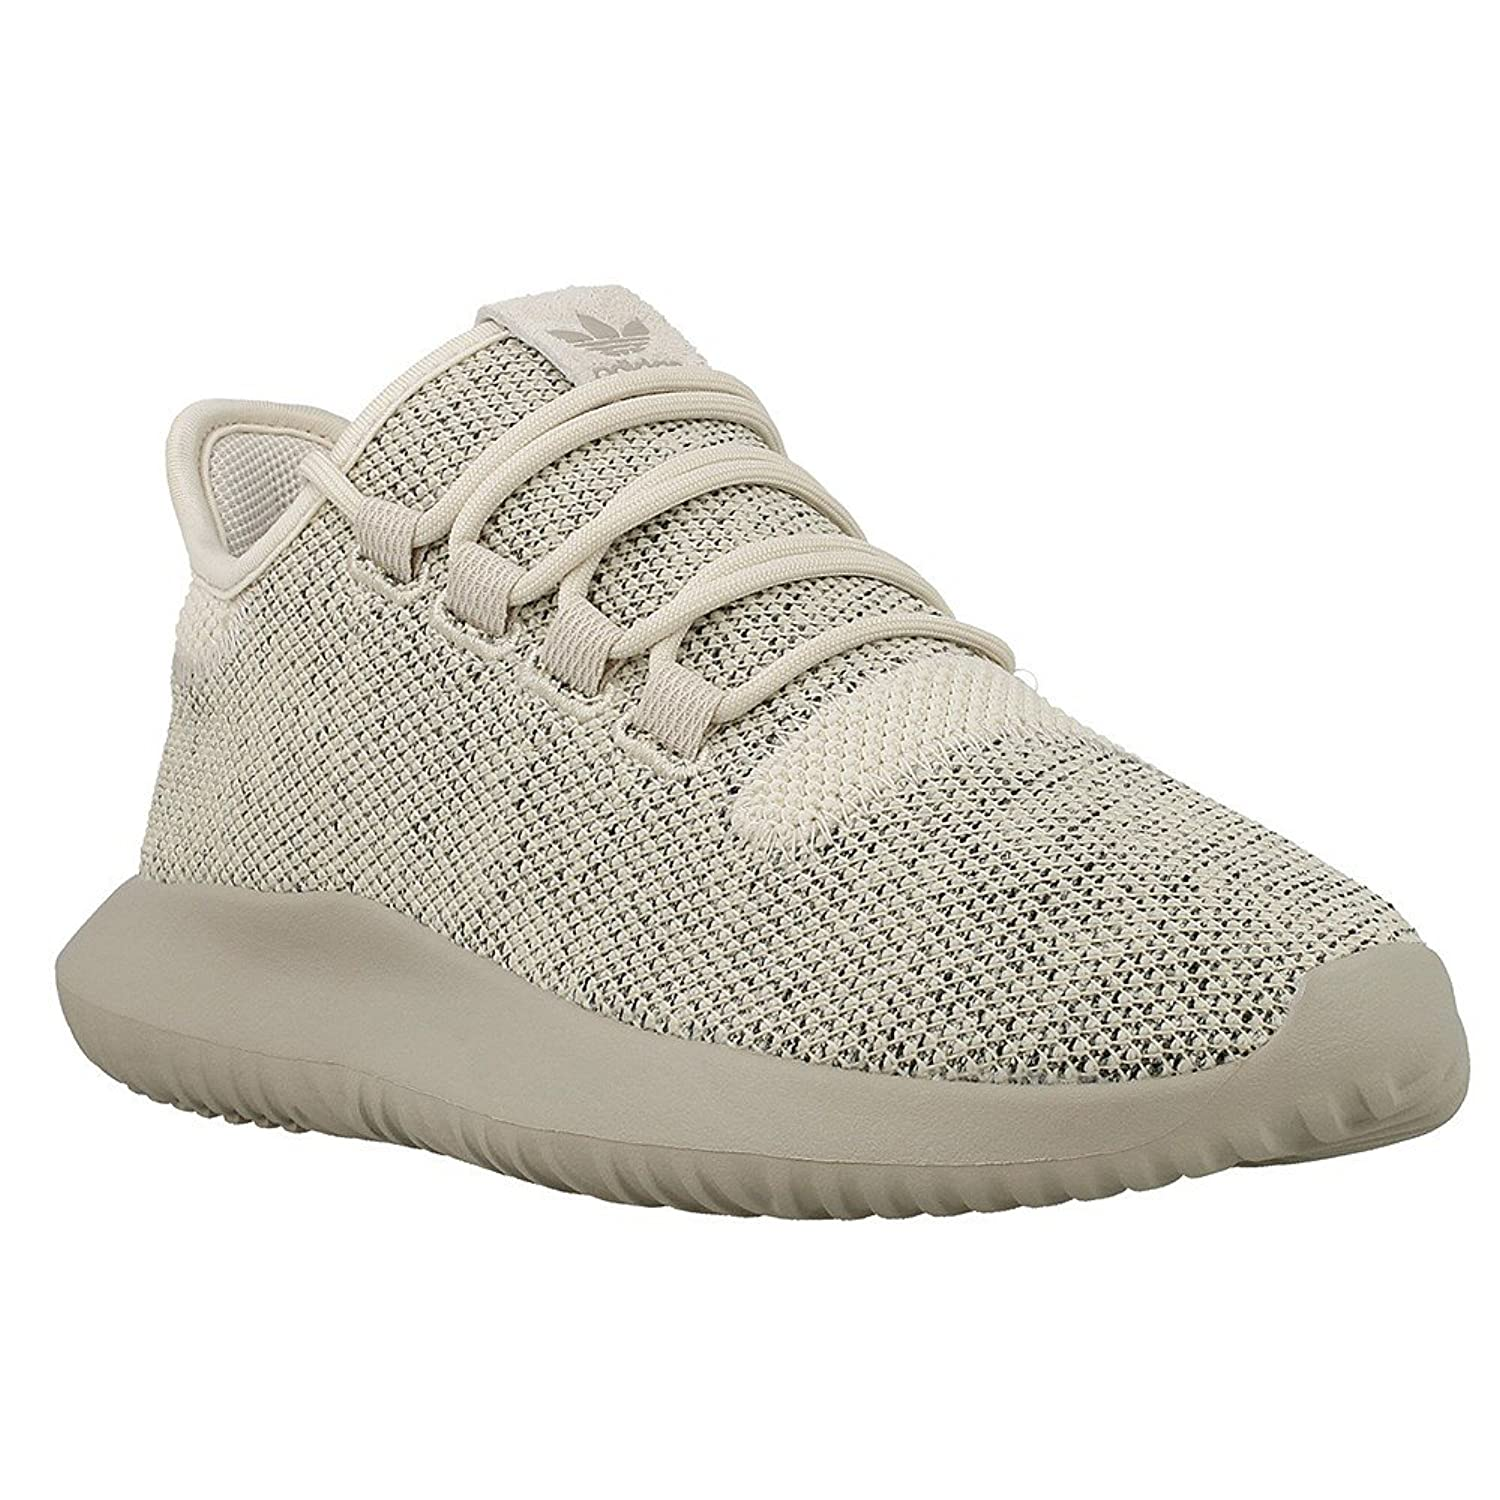 adidas Toddler Boys' Tubular Shadow Casual Sneakers from Finish